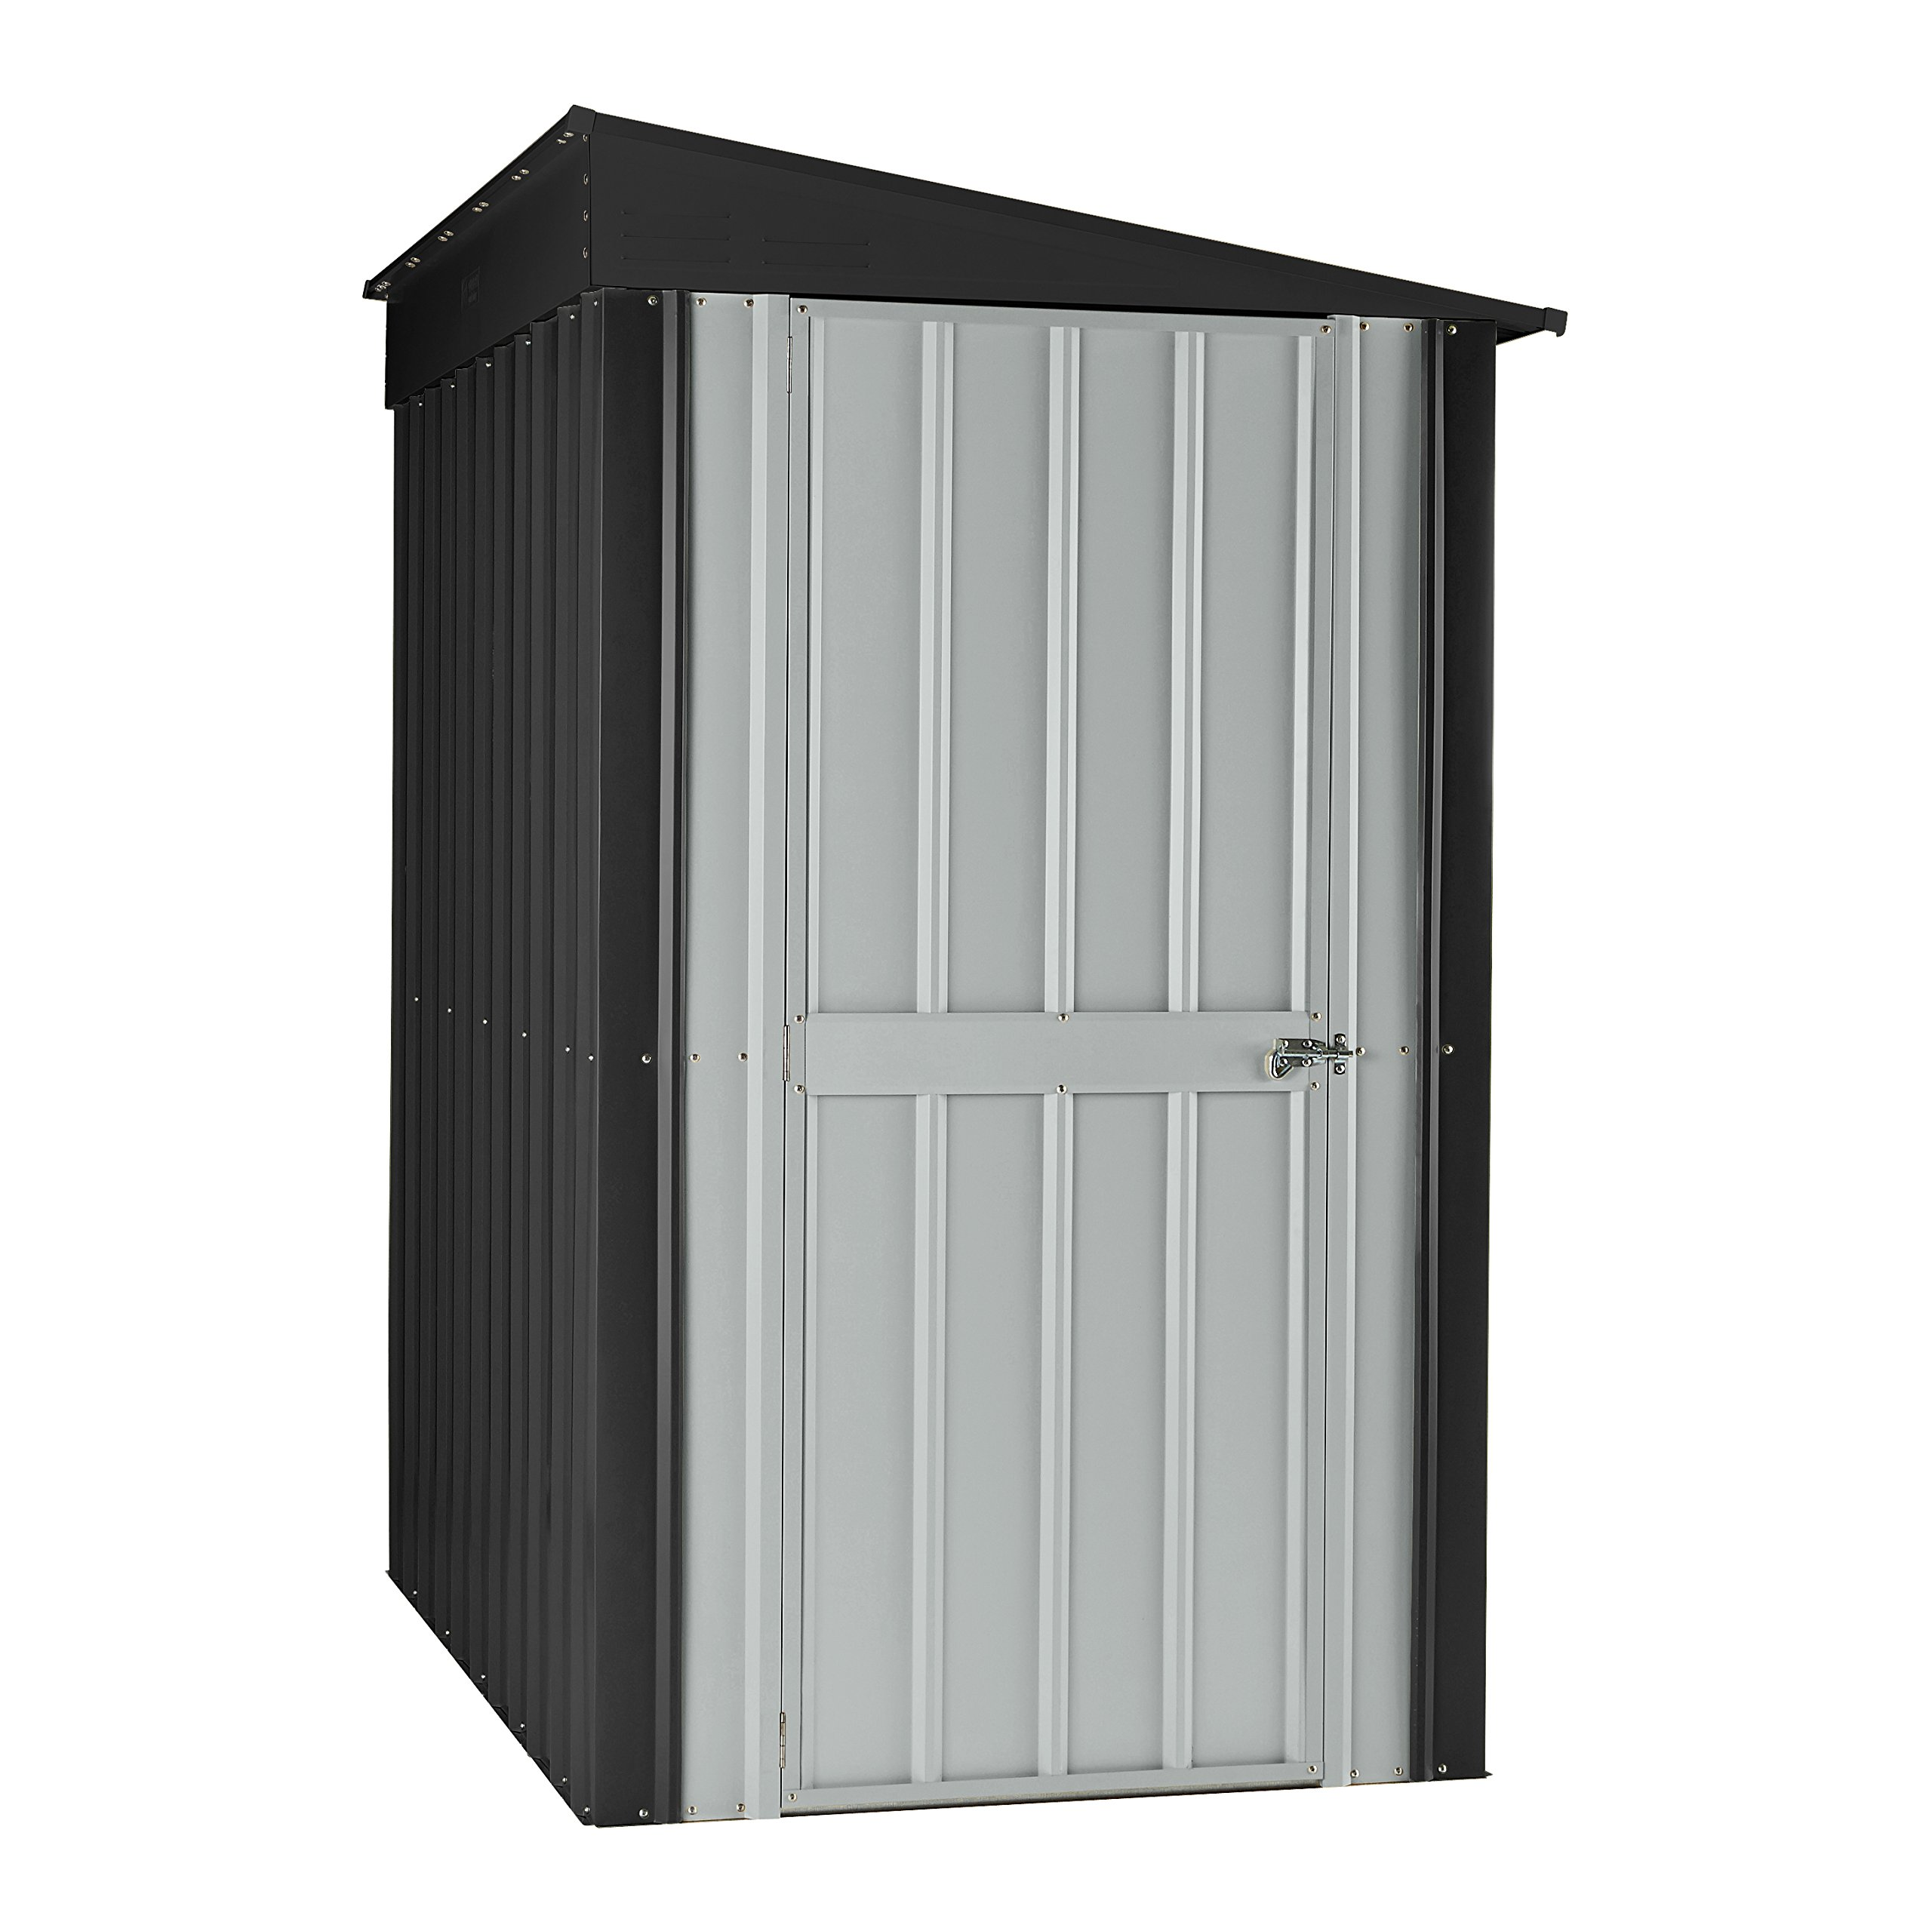 Globel 4x6 Lean-To Steel Storage Shed Slate Grey and Aluminum White